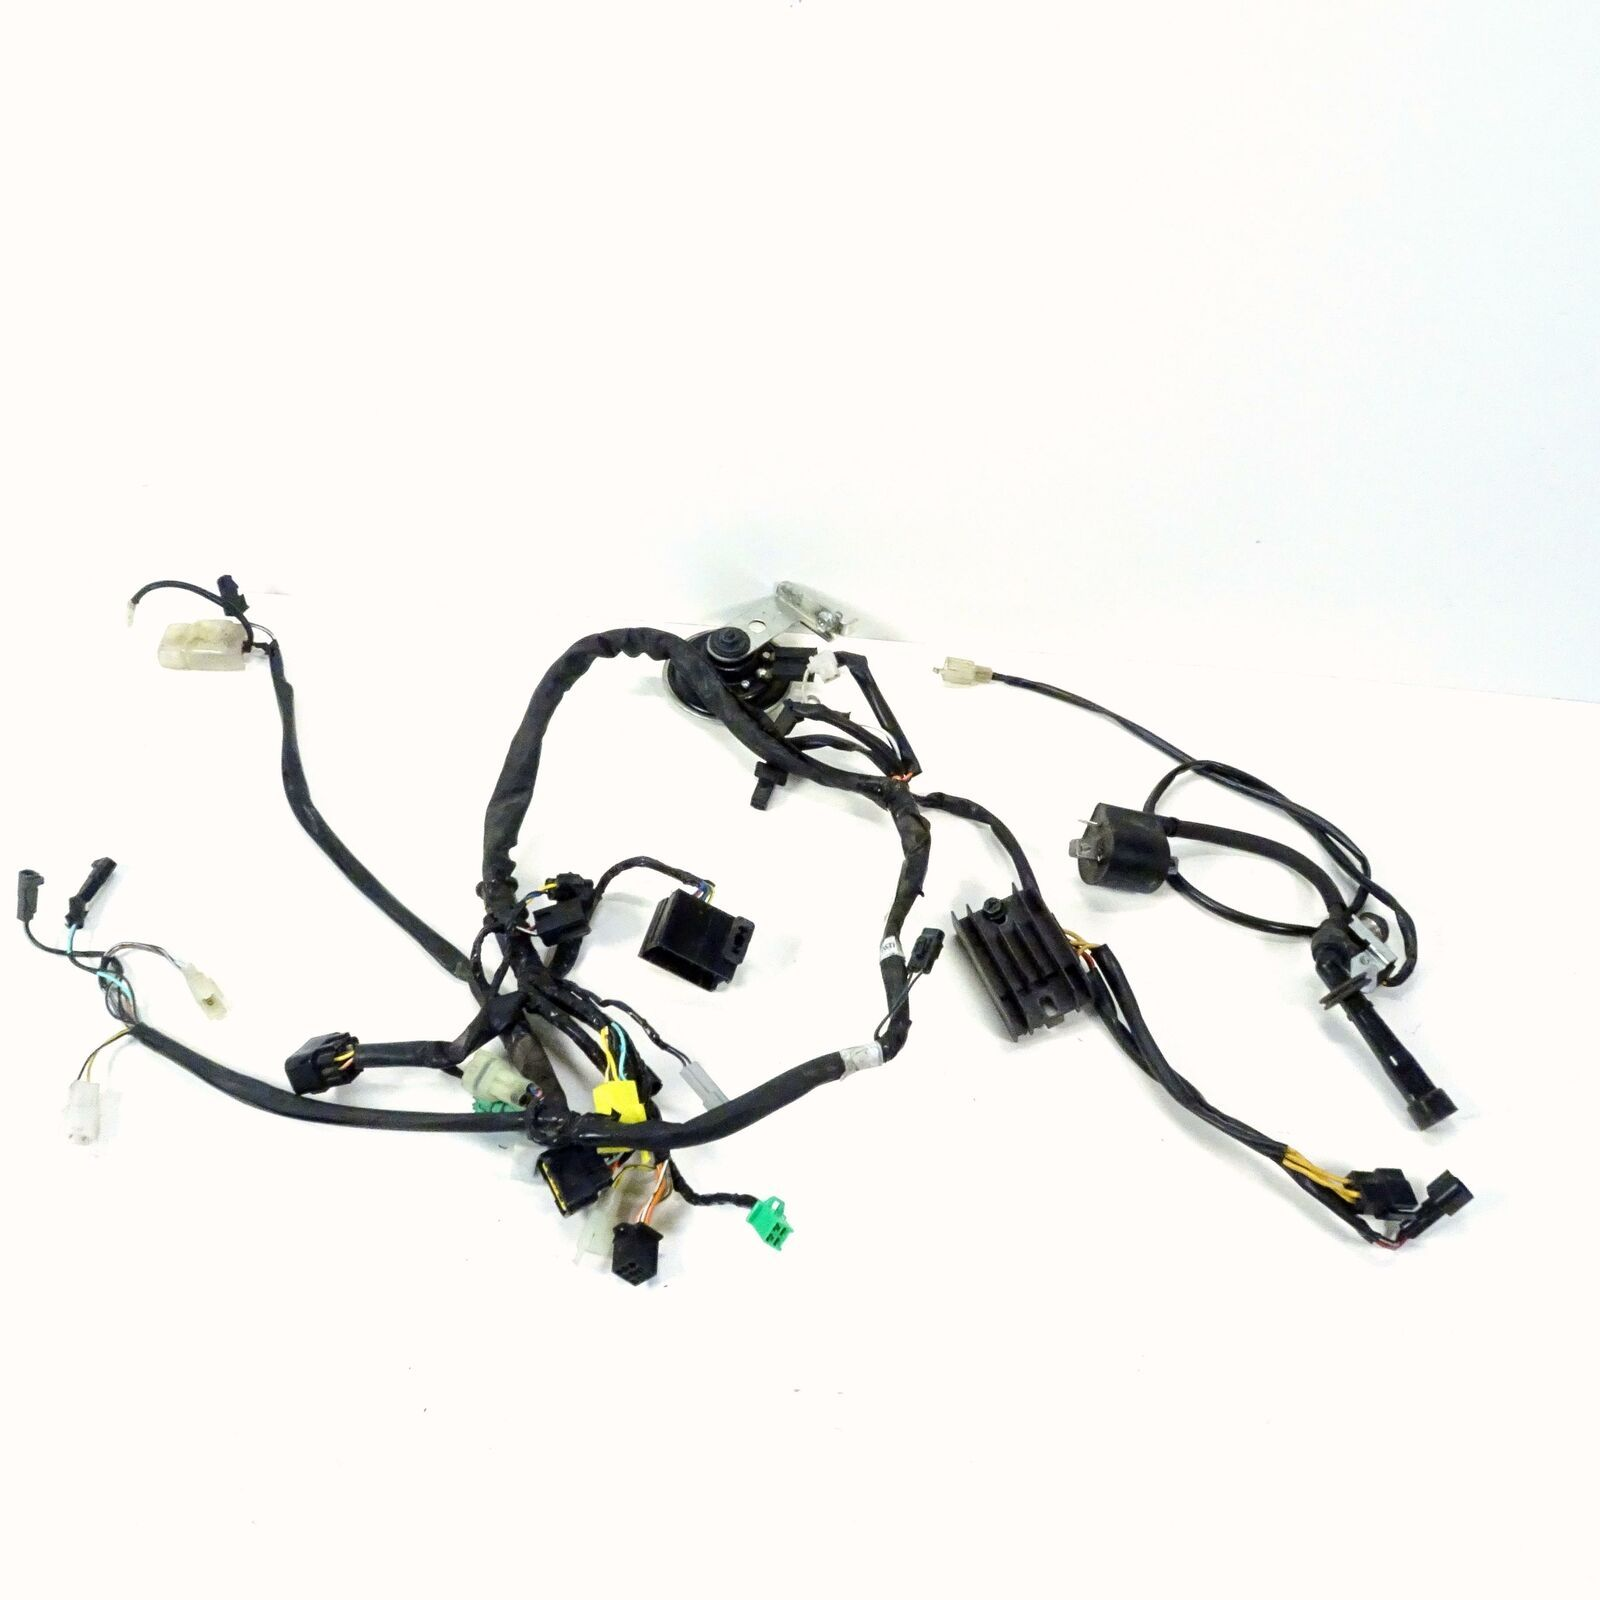 This Wire Harness Is In Very Good Condition And Shows